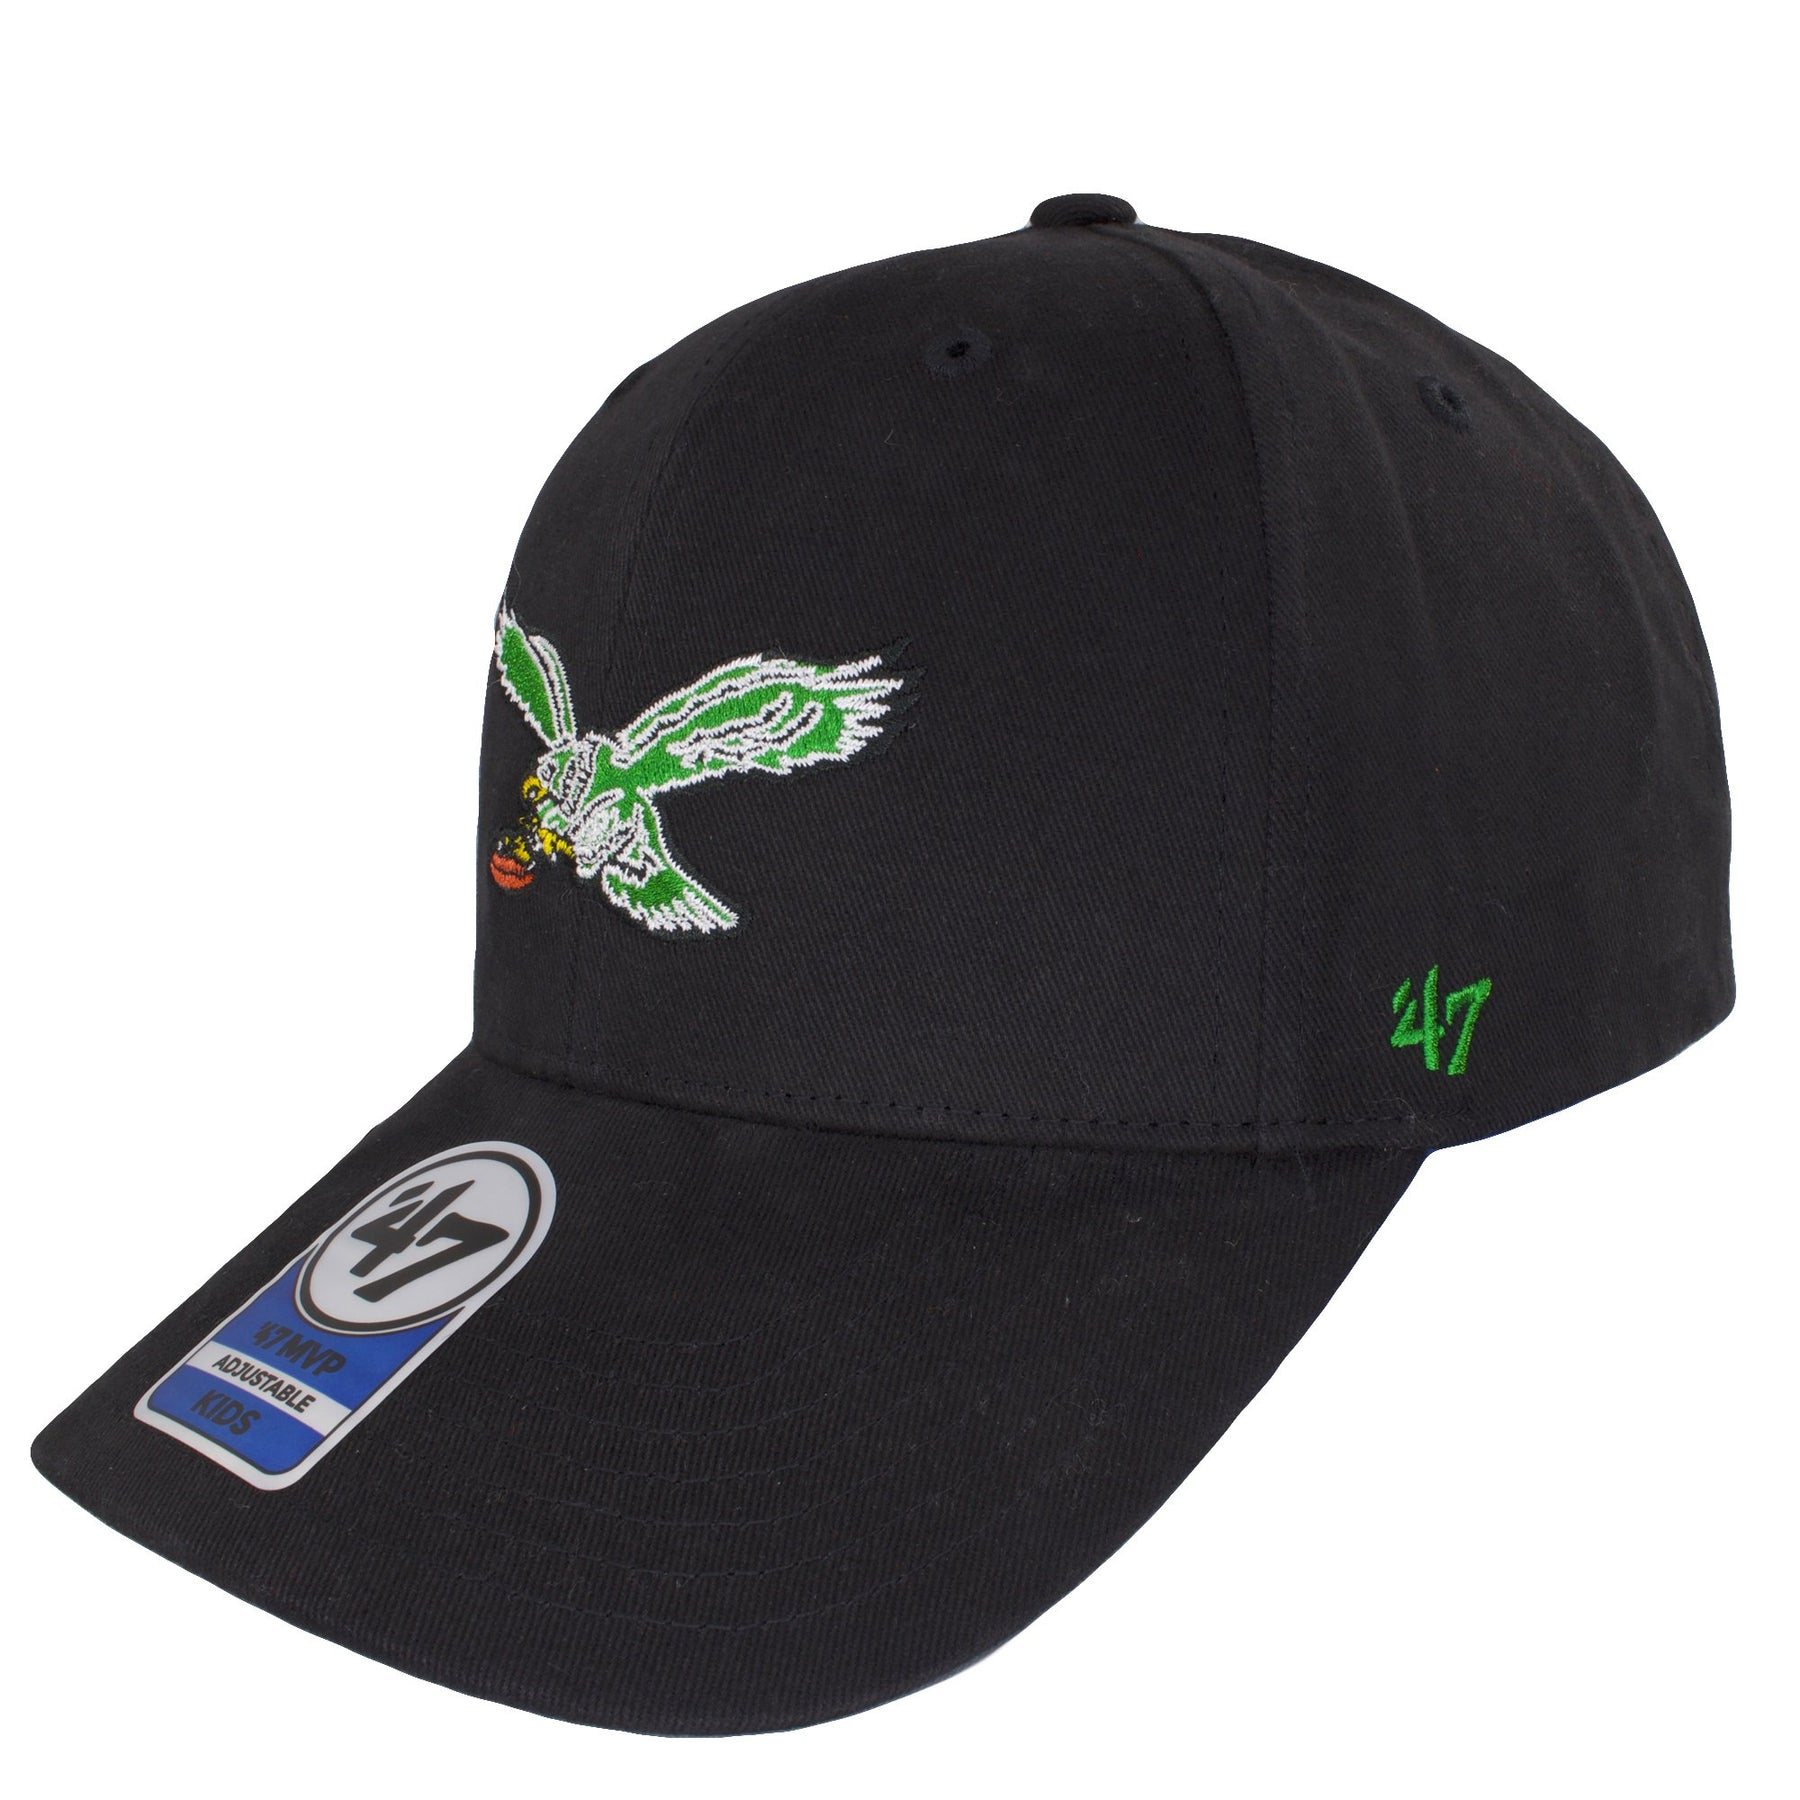 5f33c44cf4b ... black adjustable  on the front of the kids sized philadelphia eagles  throwback logo dad hat is the retro  on the left side of the philadelphia  eagles ...